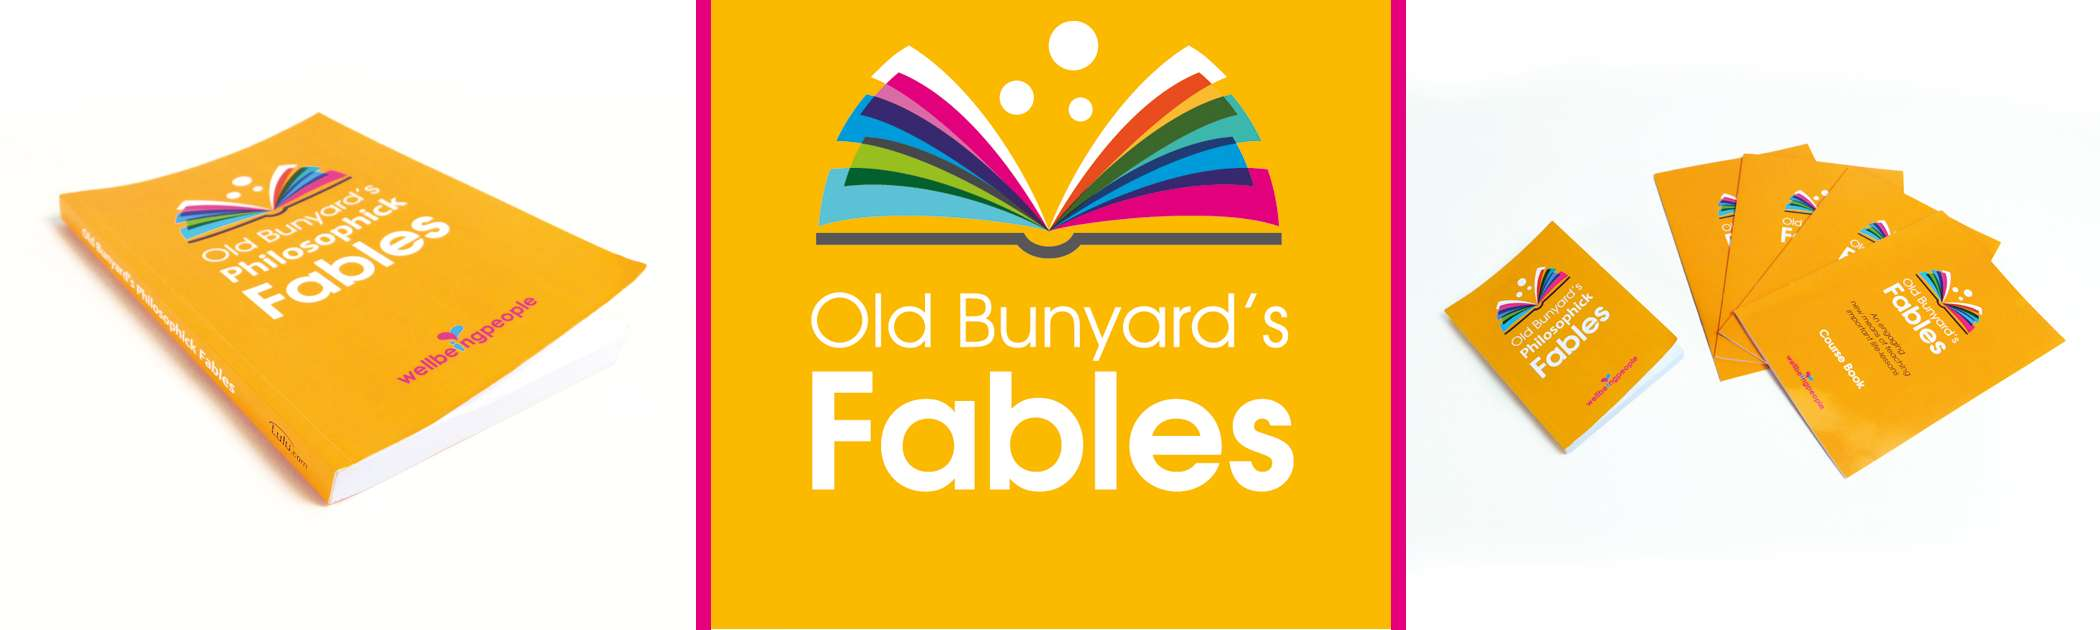 Old Bunyard's Philosophick Fables